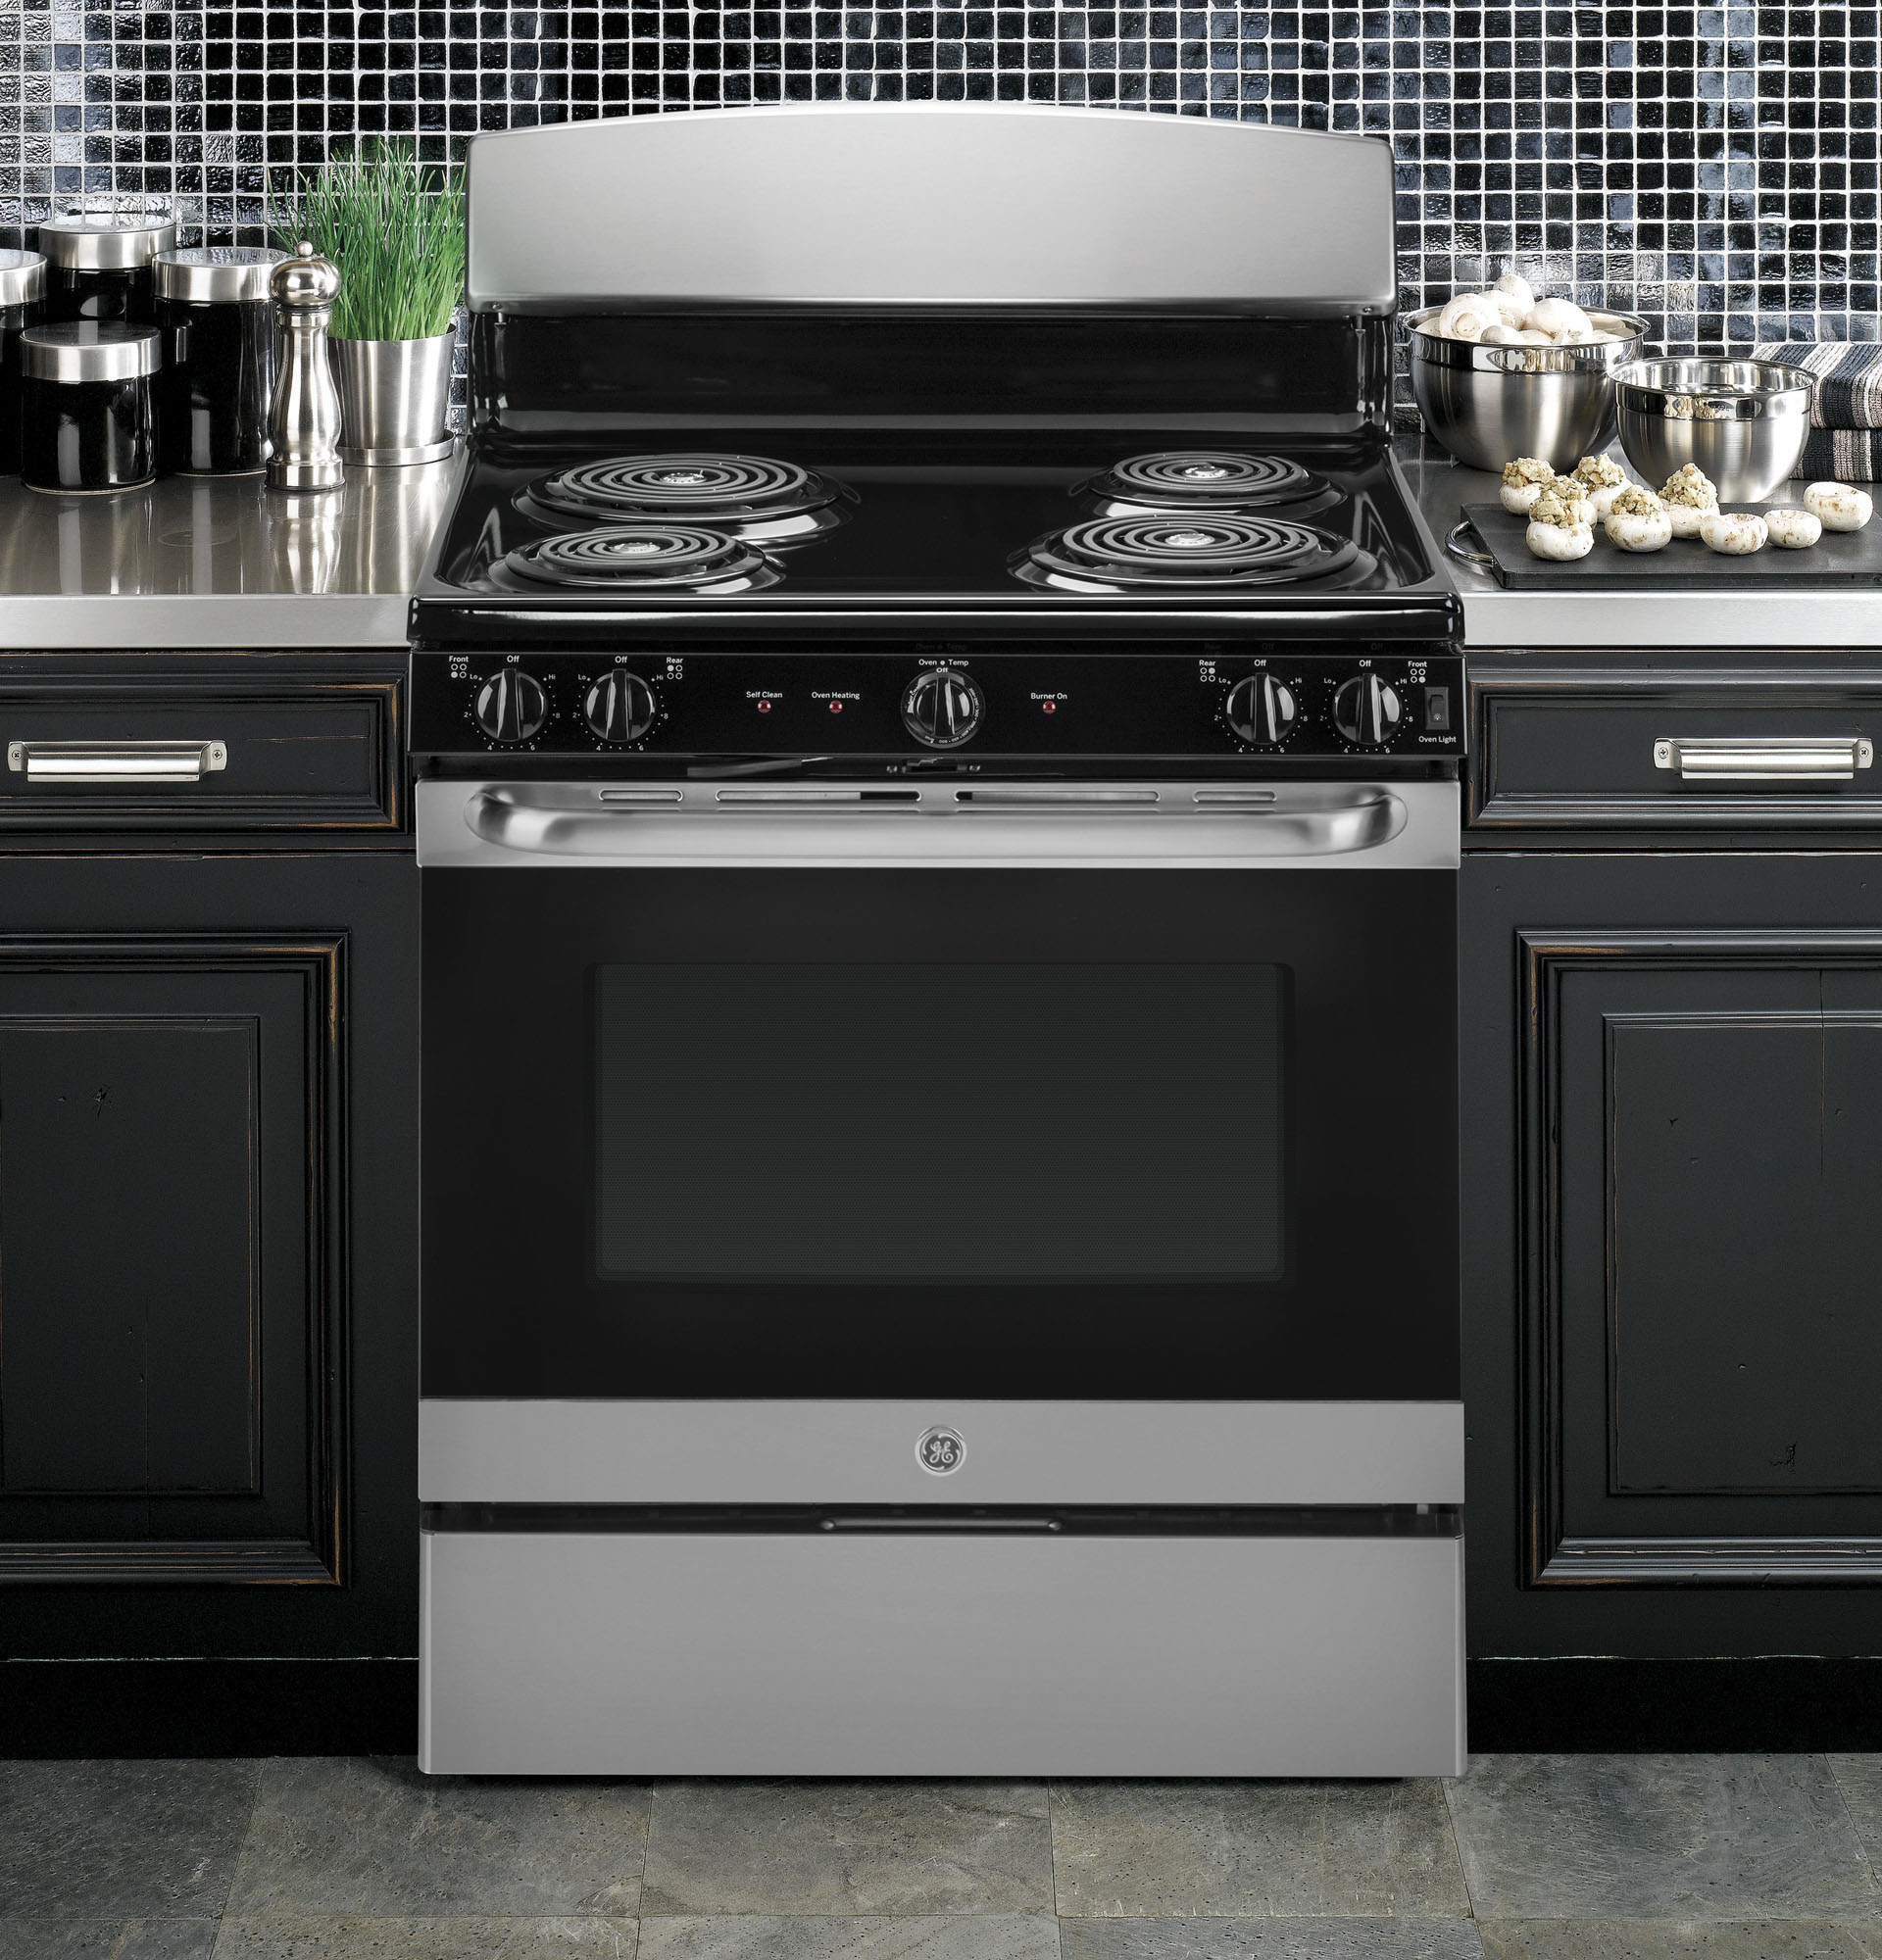 "GE Appliances JB450RKSS 30"" Freestanding Electric Range w/Front Controls - Stainless Steel"